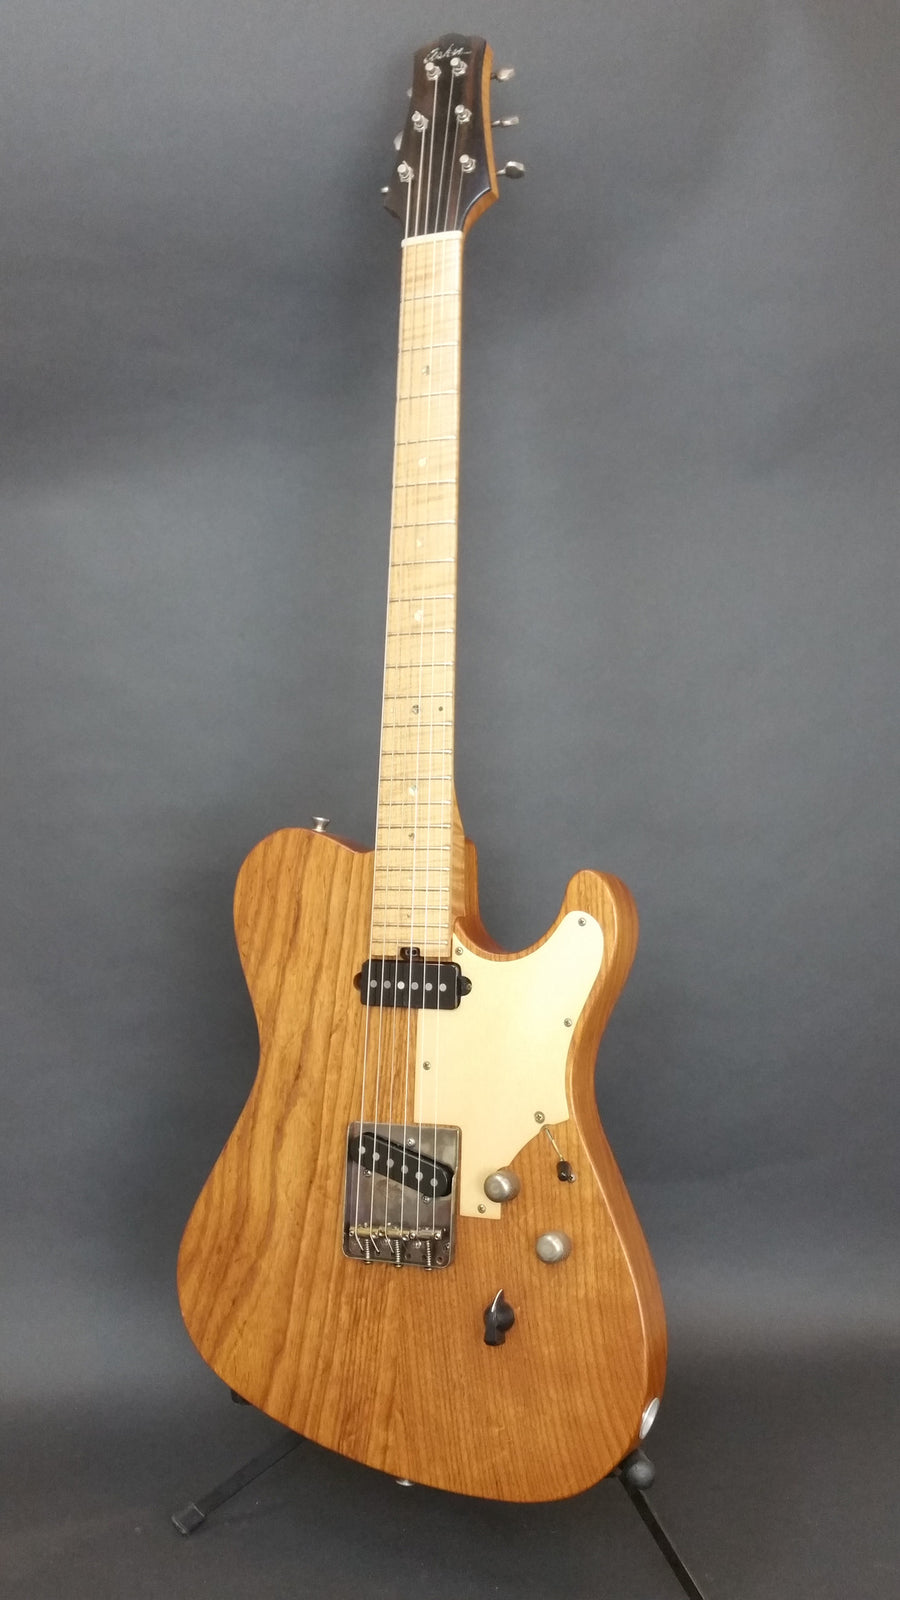 SOLD Asher T Deluxe Roasted Swamp Ash, Anodized Metal Guard, #955 Thin Skin Nitro